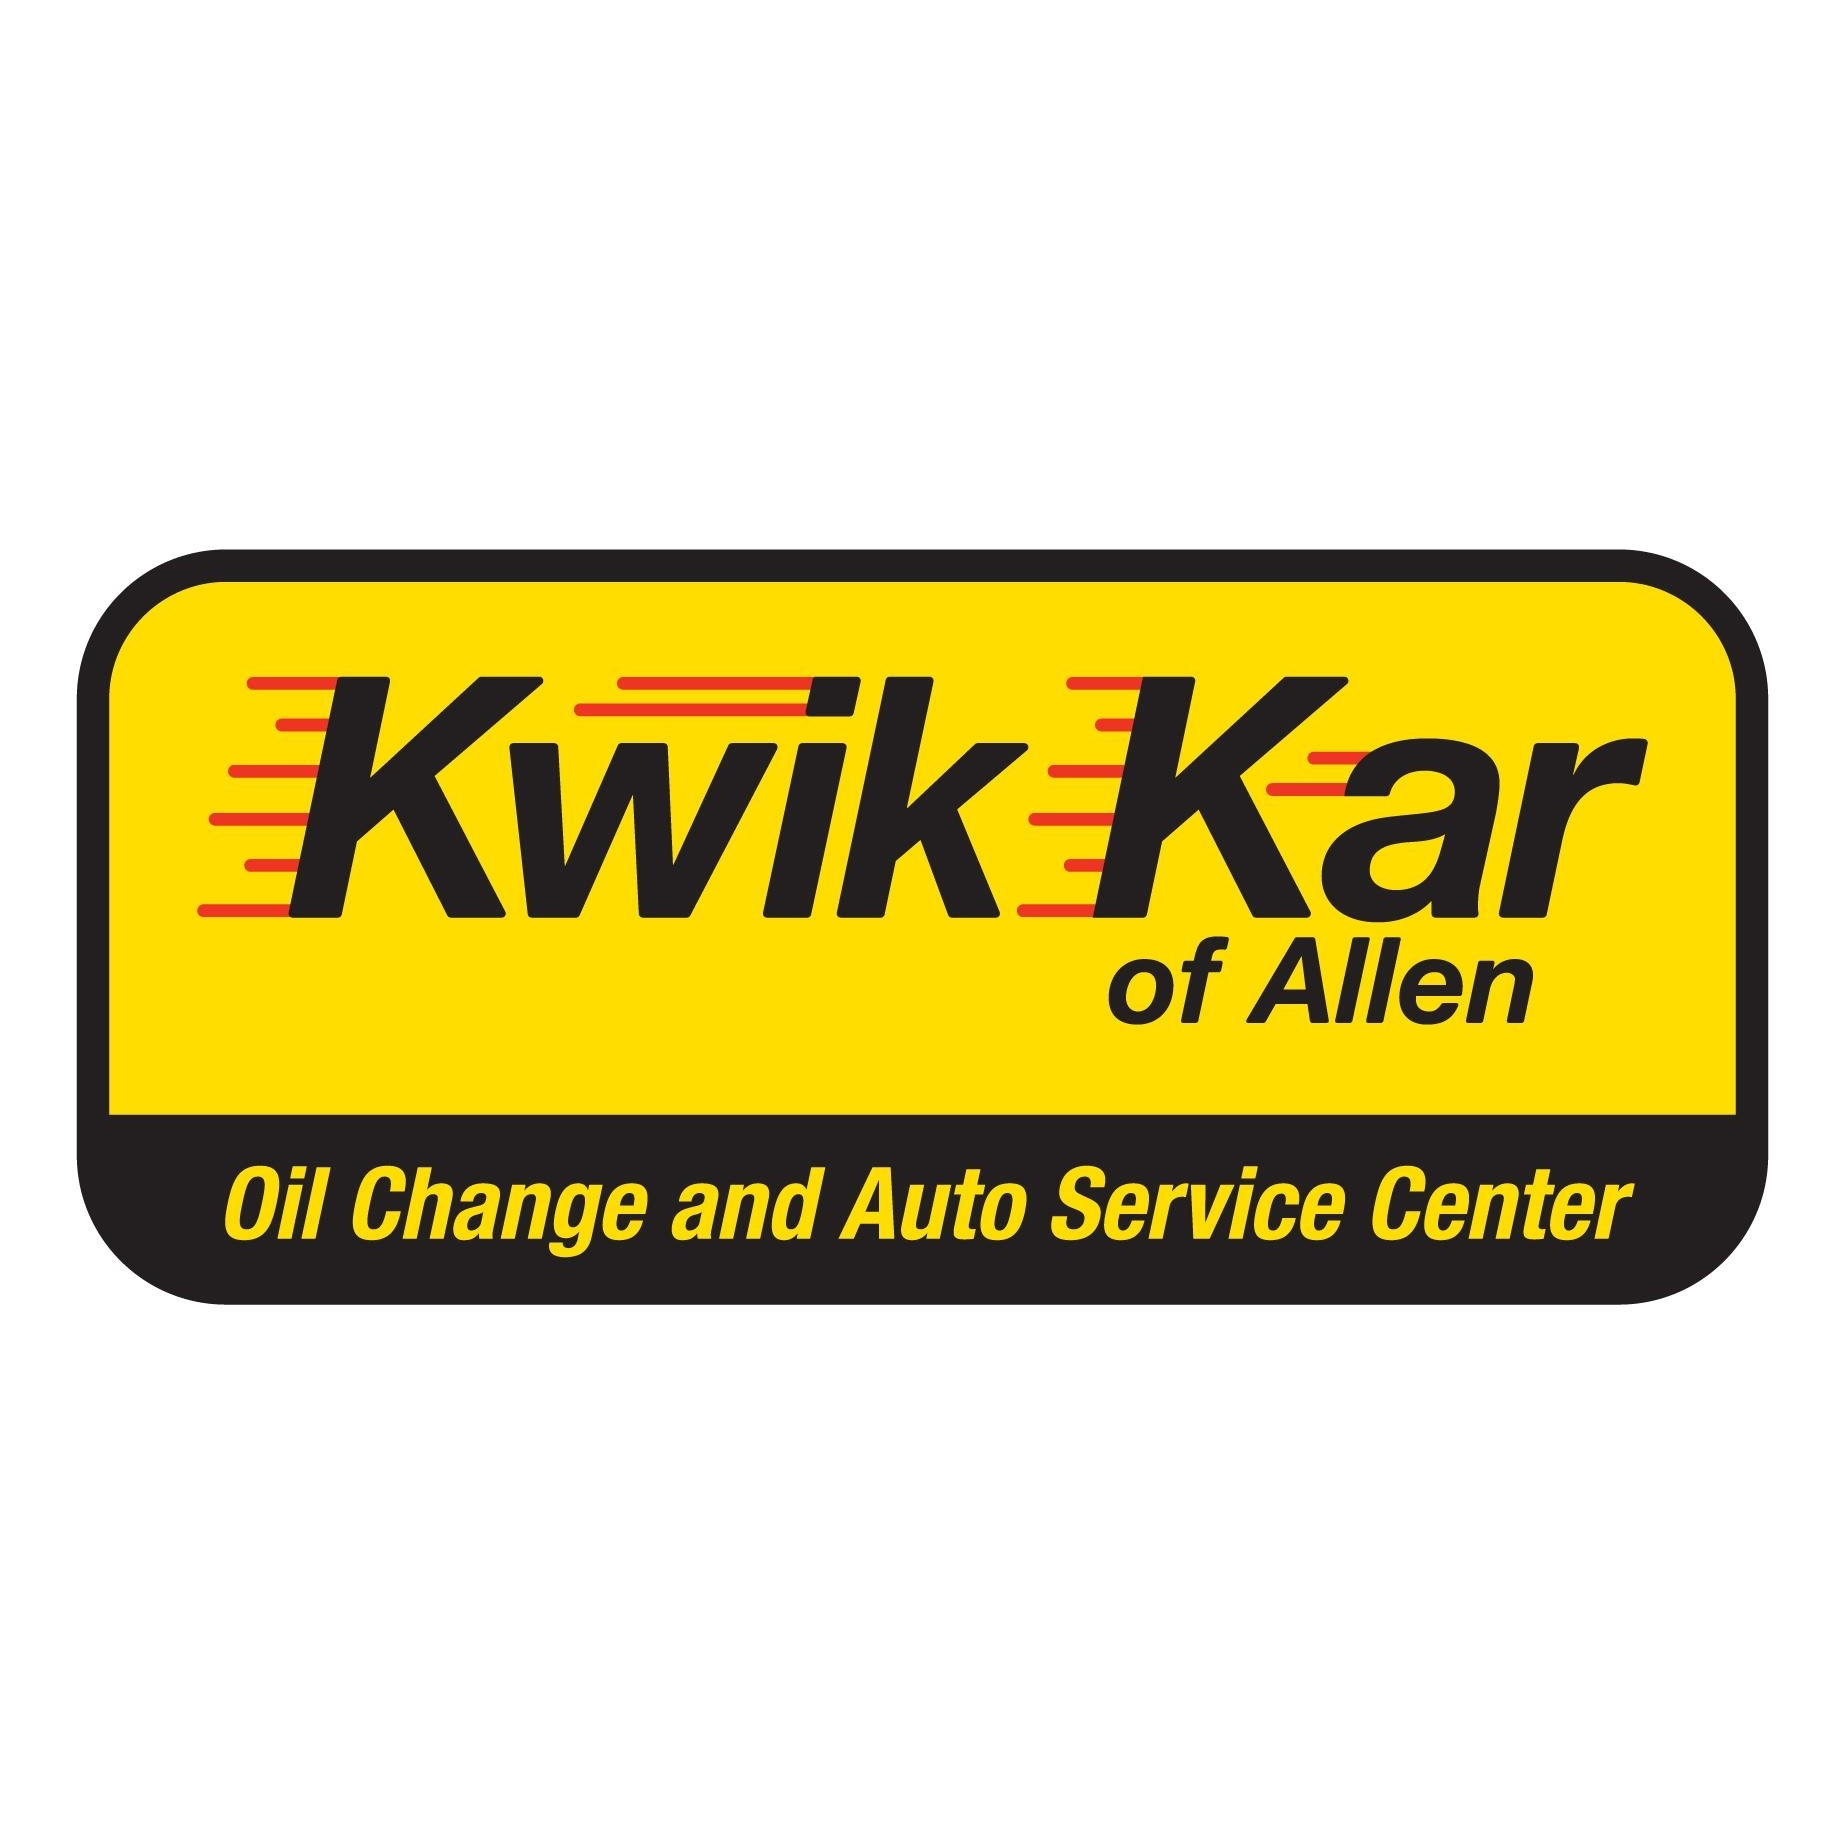 Quick stop oil change coupons